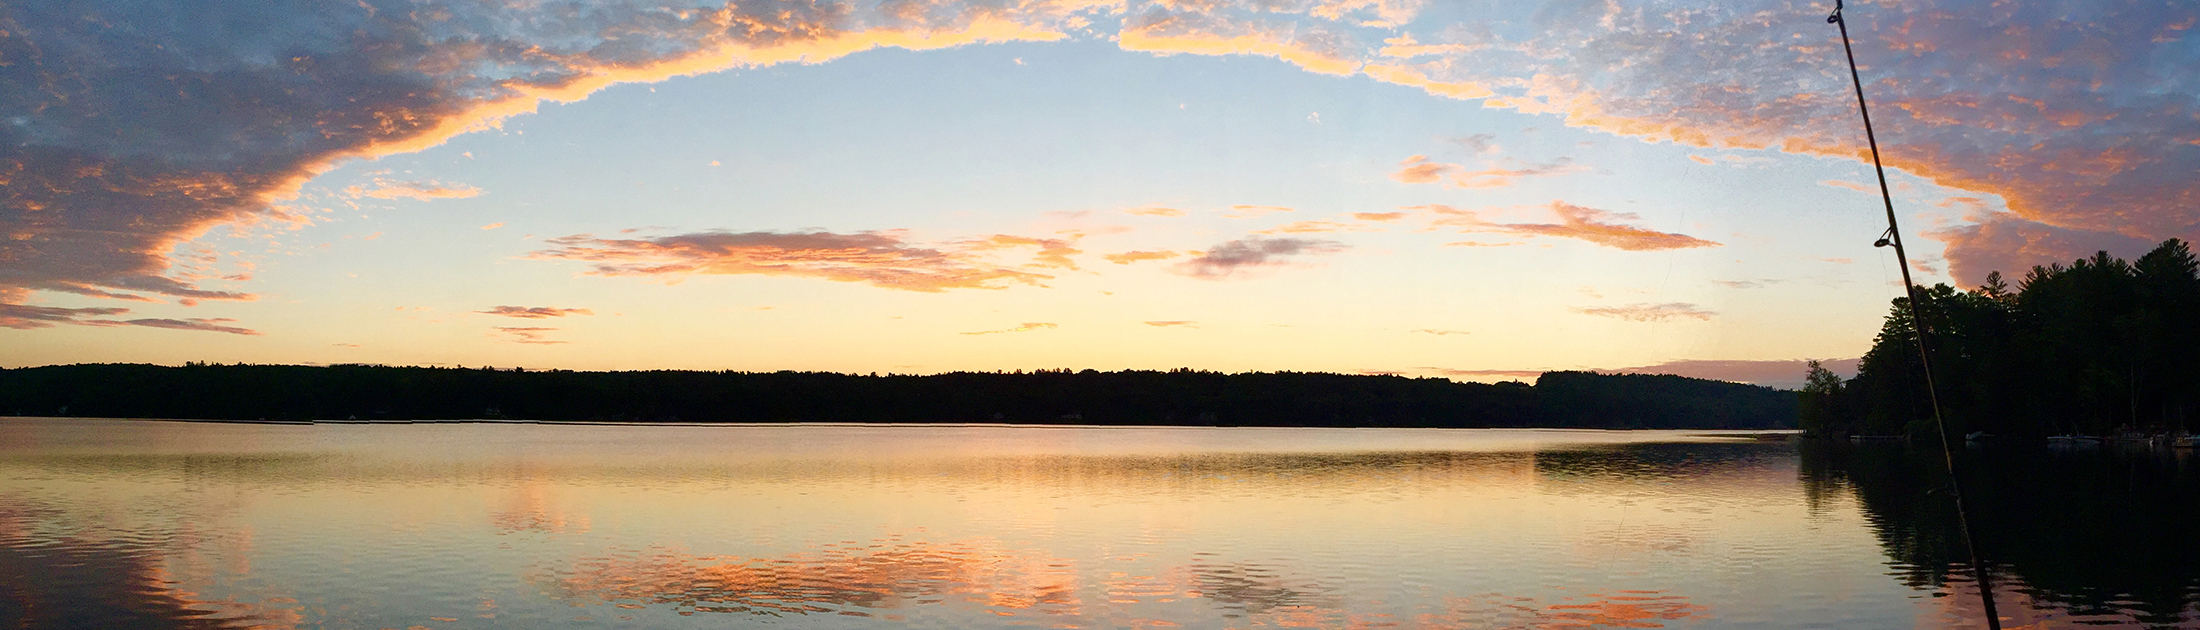 A New Hampshire lake at sunset